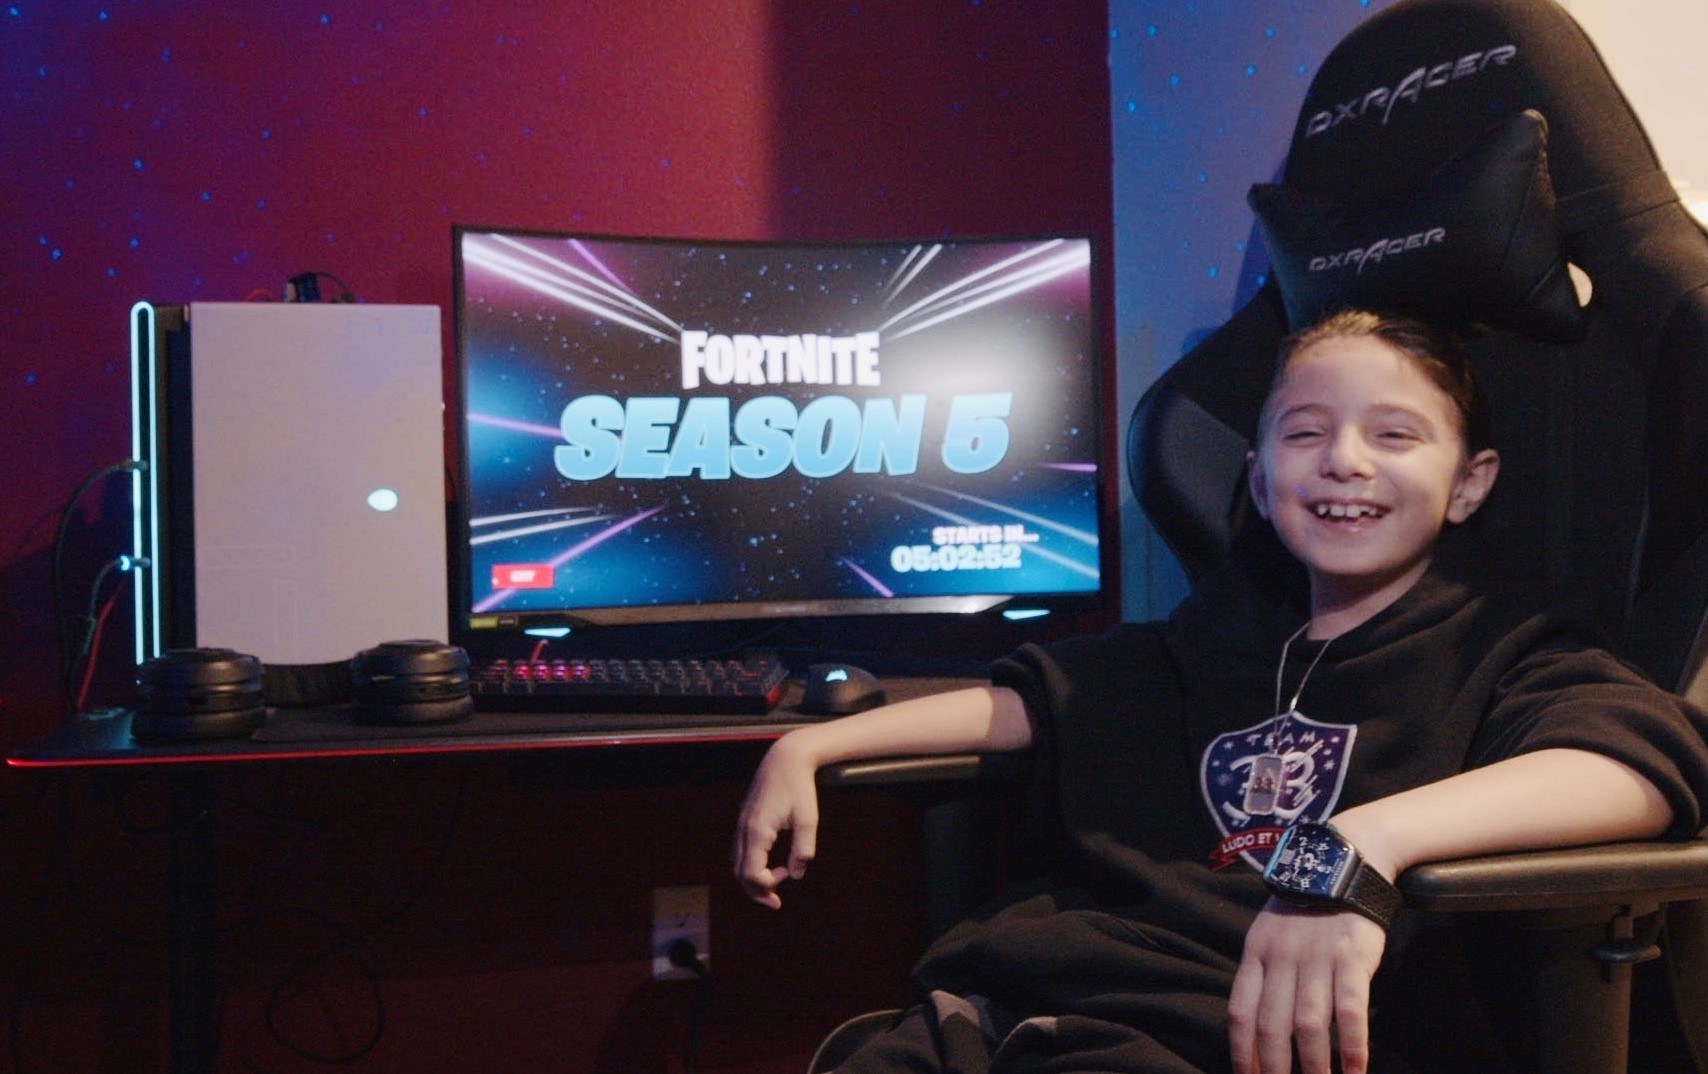 Joseph Deen, 8-Year-Old Gamer, Signs to Professional eSports Team Known As Team 33 for a $33,000 Signing Bonus